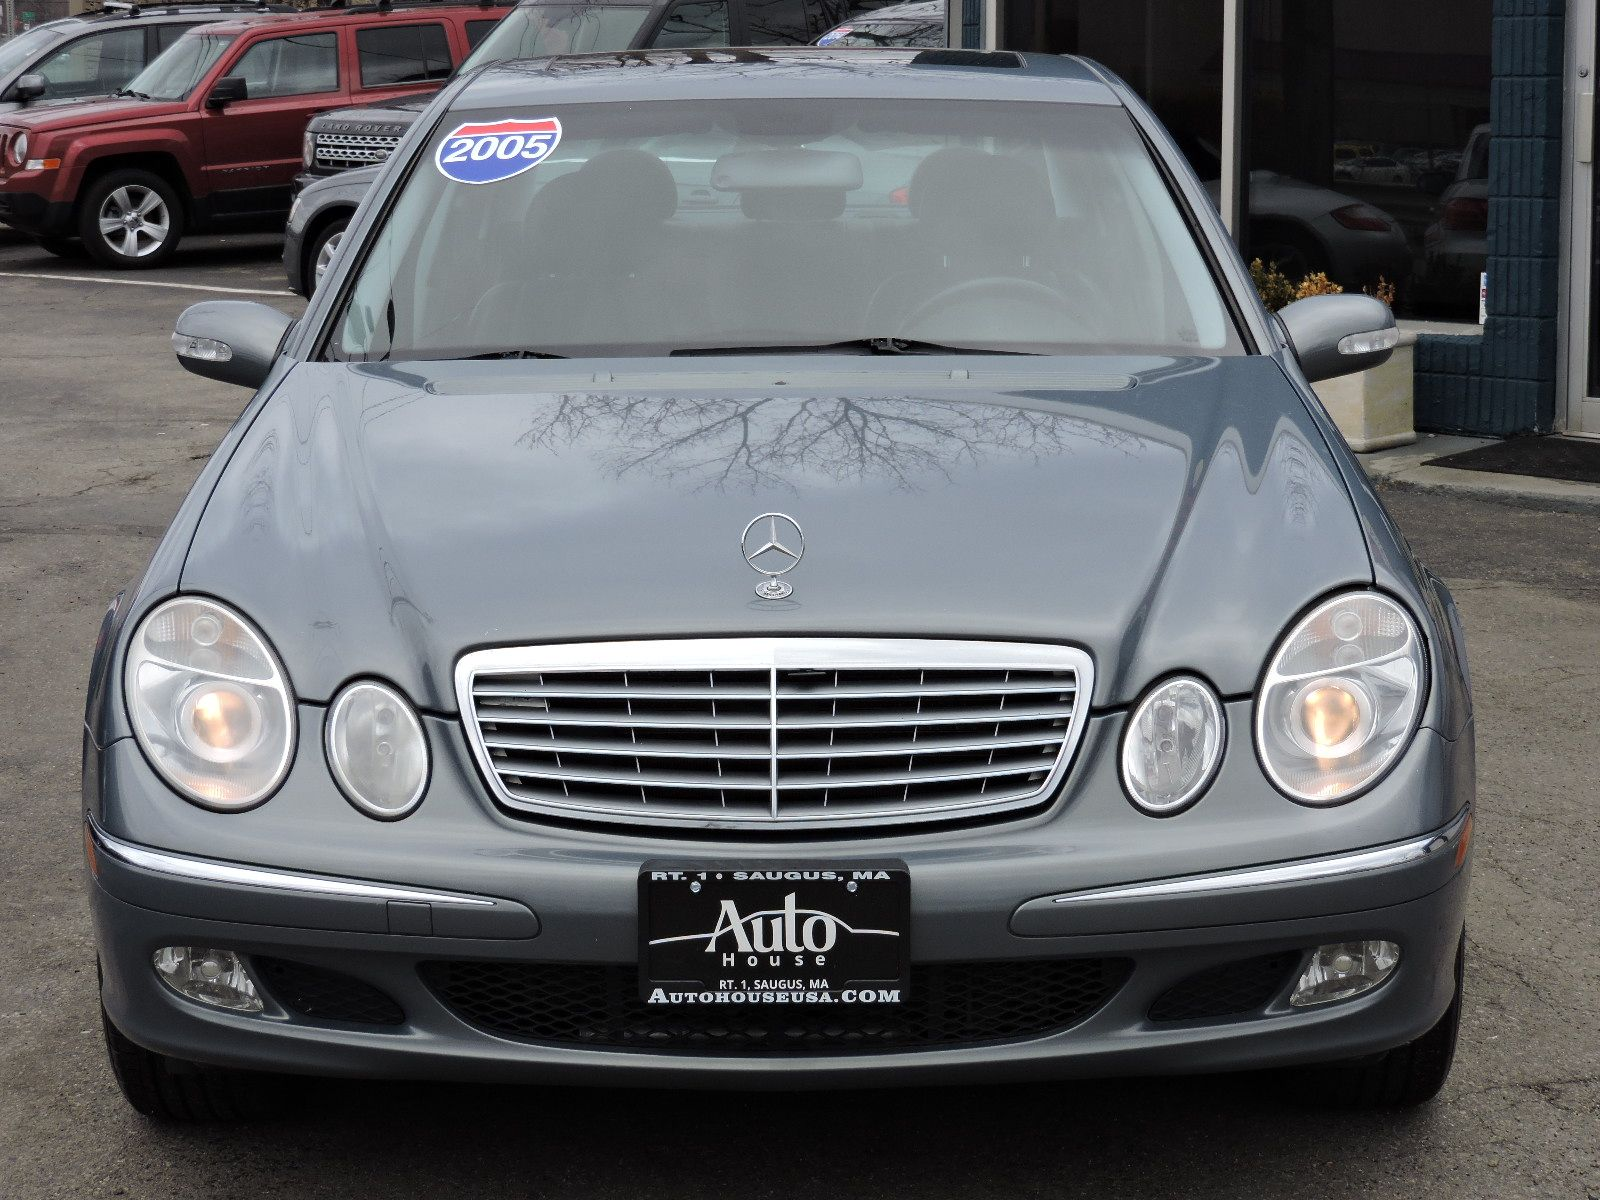 2005 Mercedes-Benz E320 4MATIC